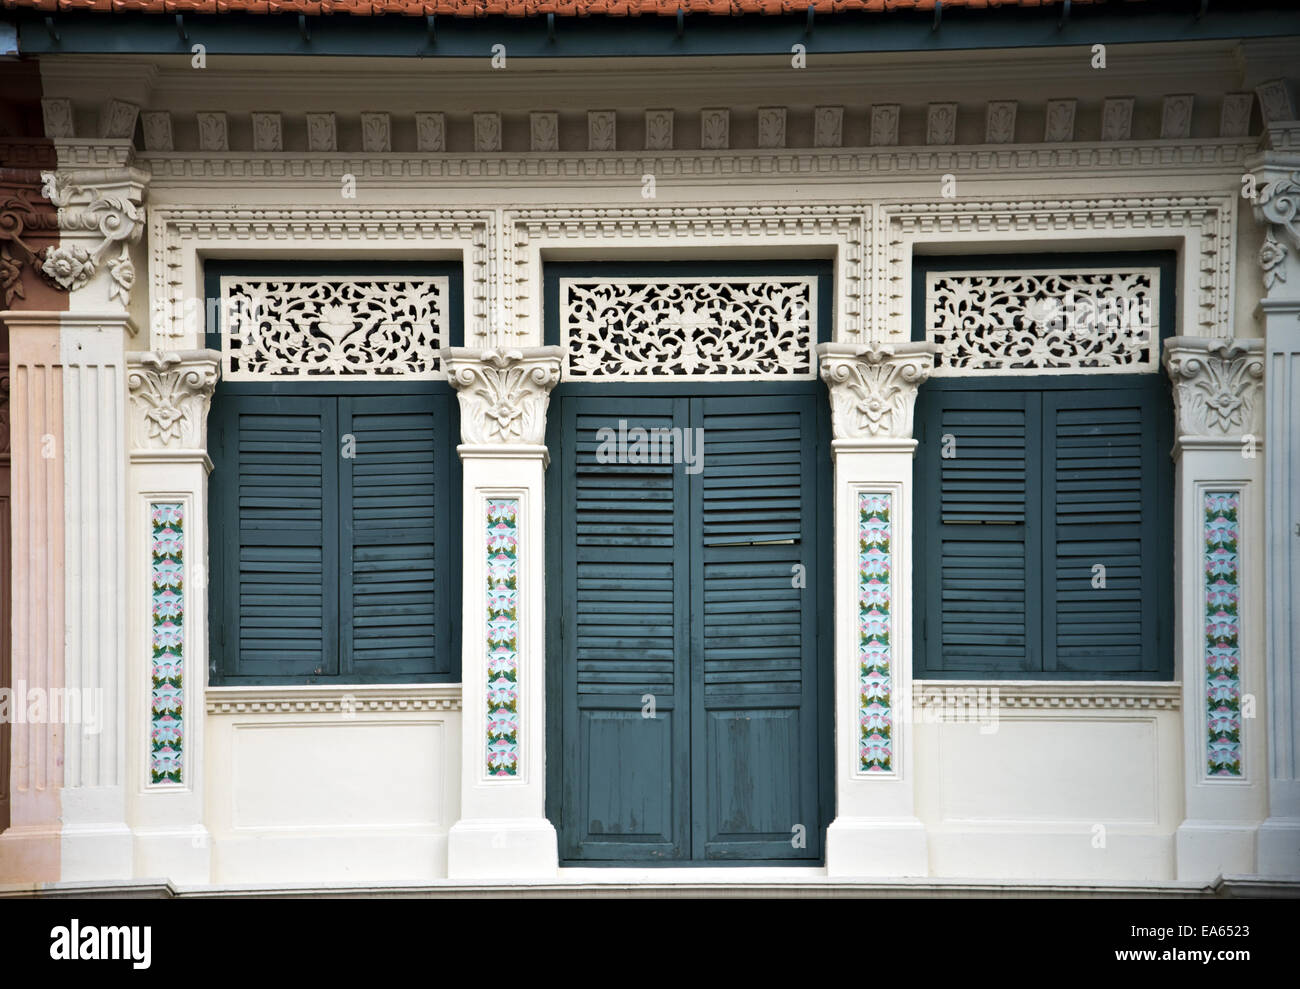 Detail of a southeast asian shophouse - Stock Image